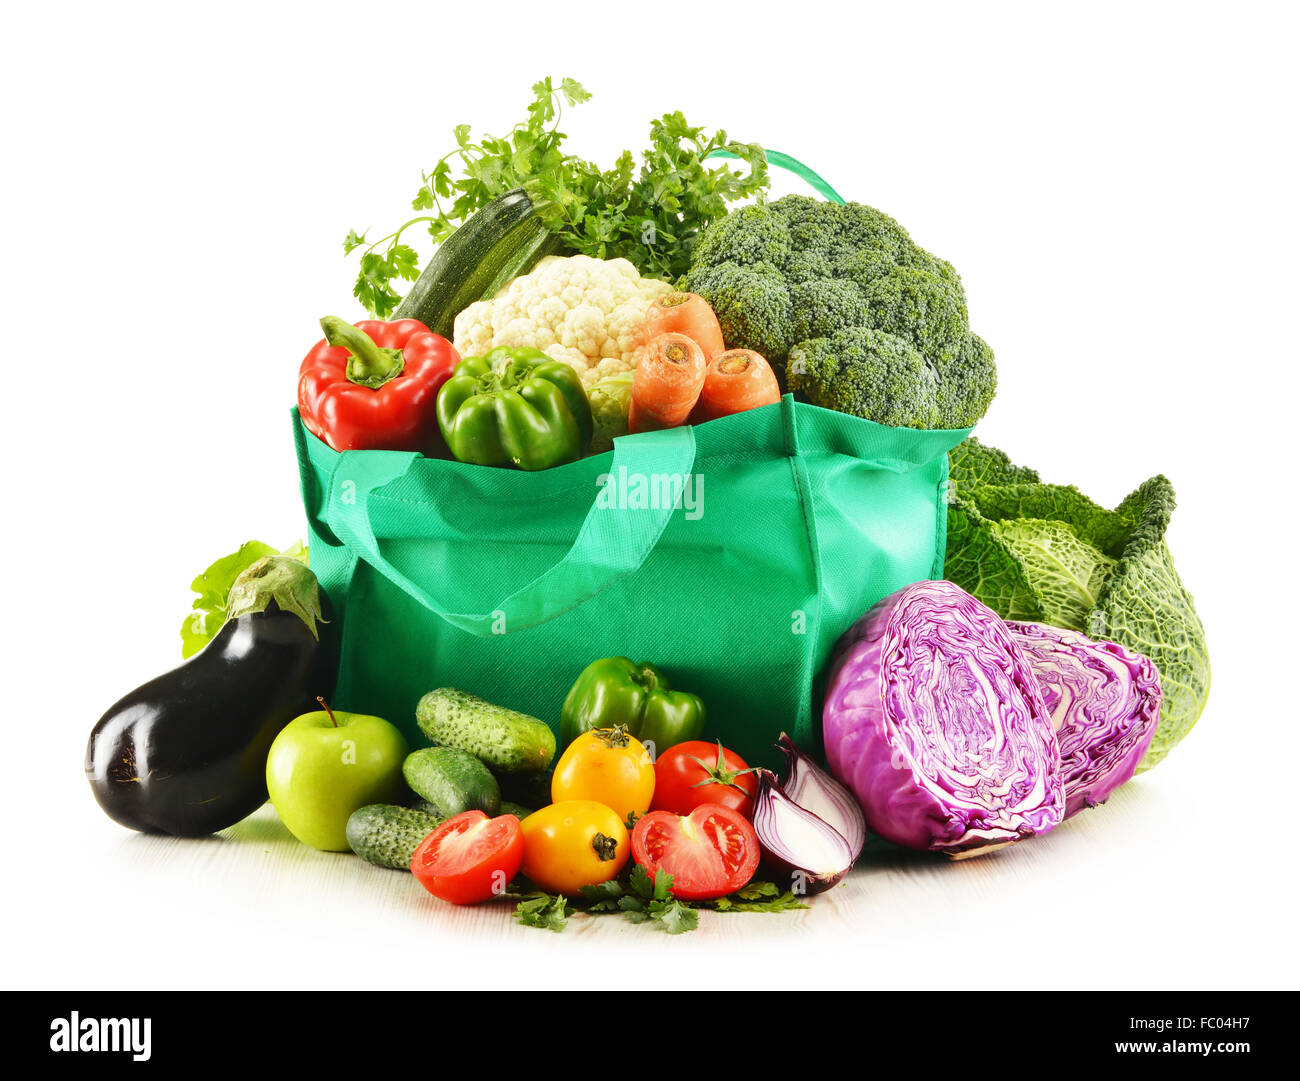 Shopping bag with variety of fresh organic vegetables isolated on white - Stock Image